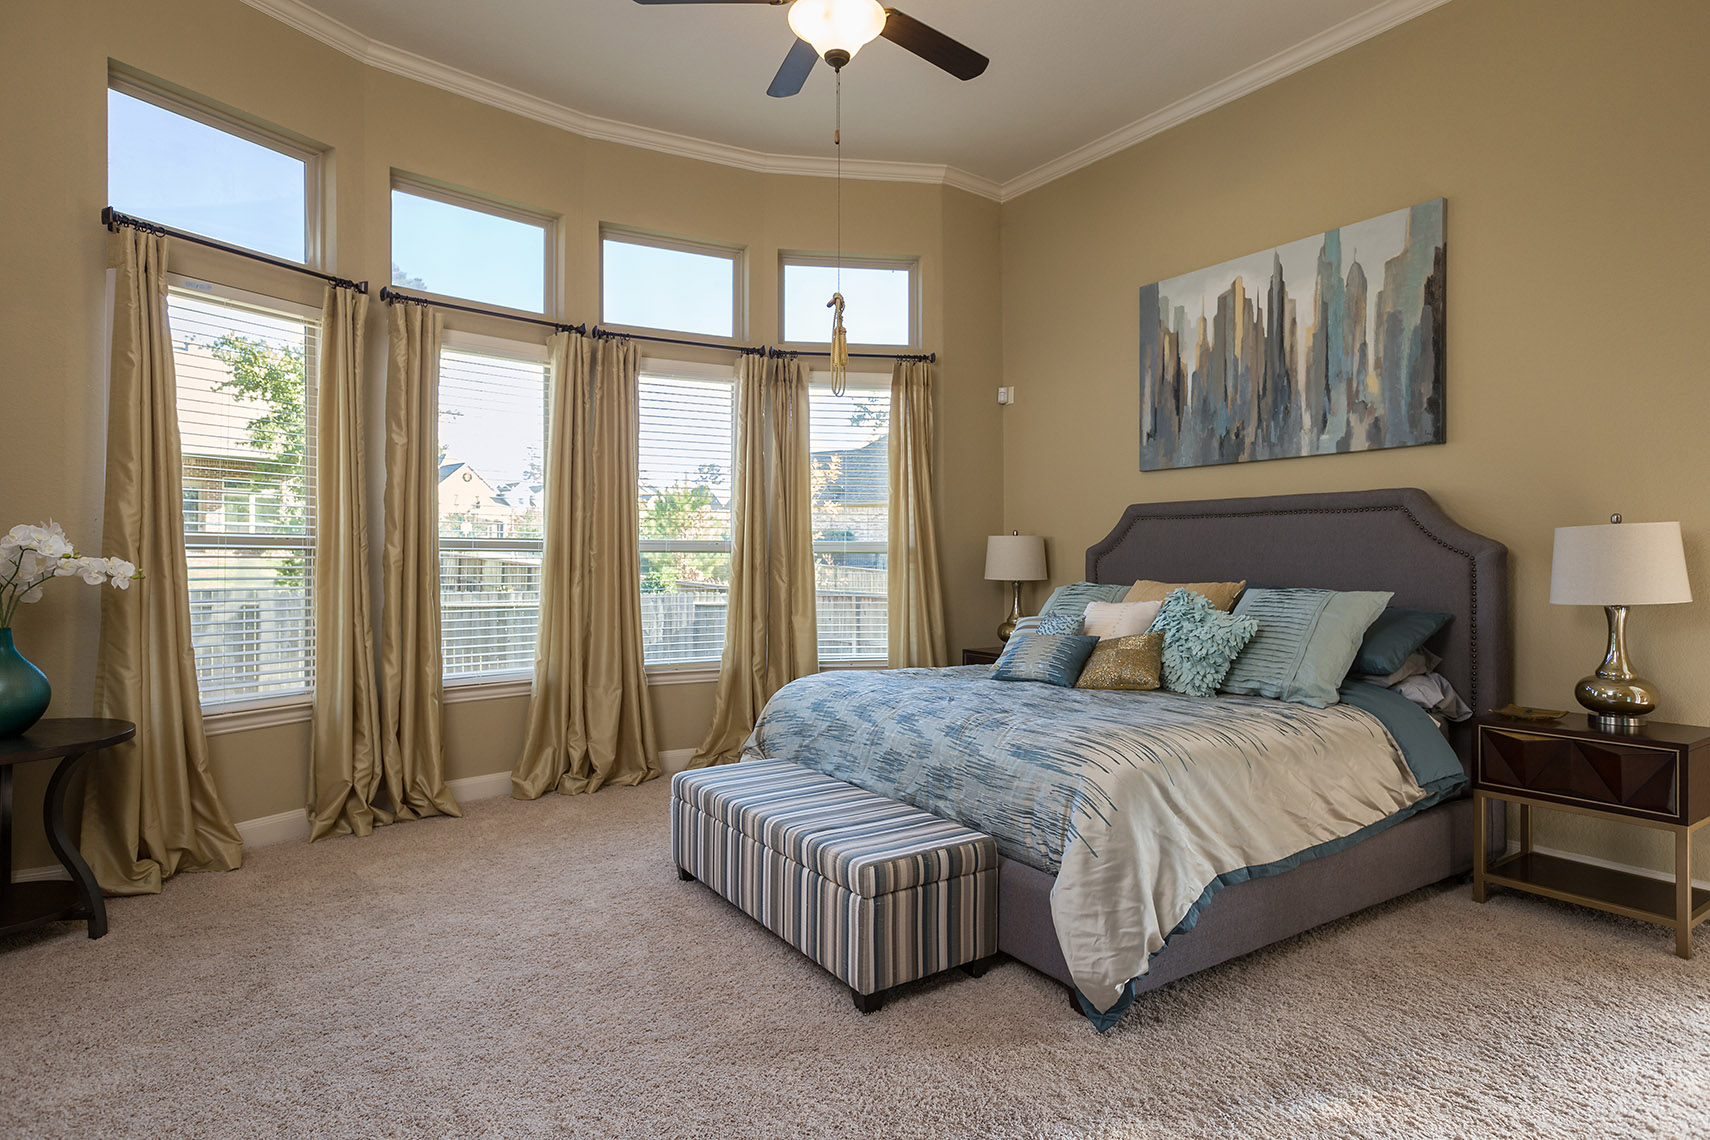 Luxurious-guest-bedroom-Conroe-real-estate-photography